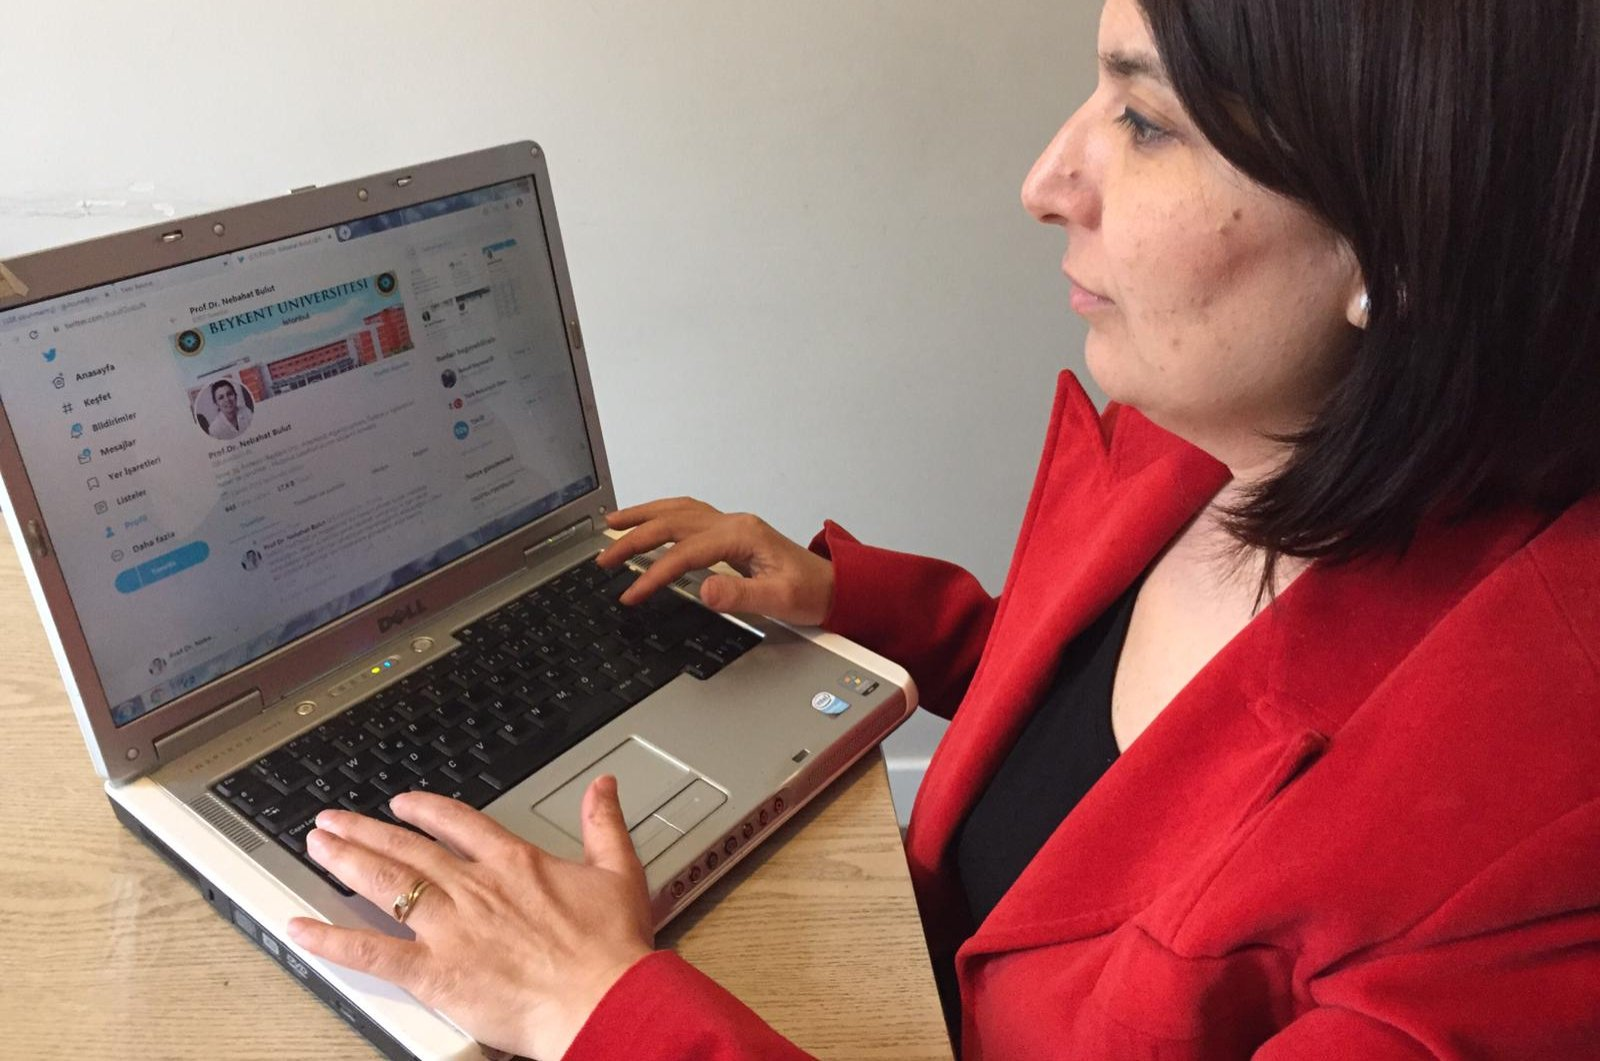 Anesthesiology and algology specialist professor Nebahat Bulut provides virtual consultations via social media, email or phones. (AA Photo)